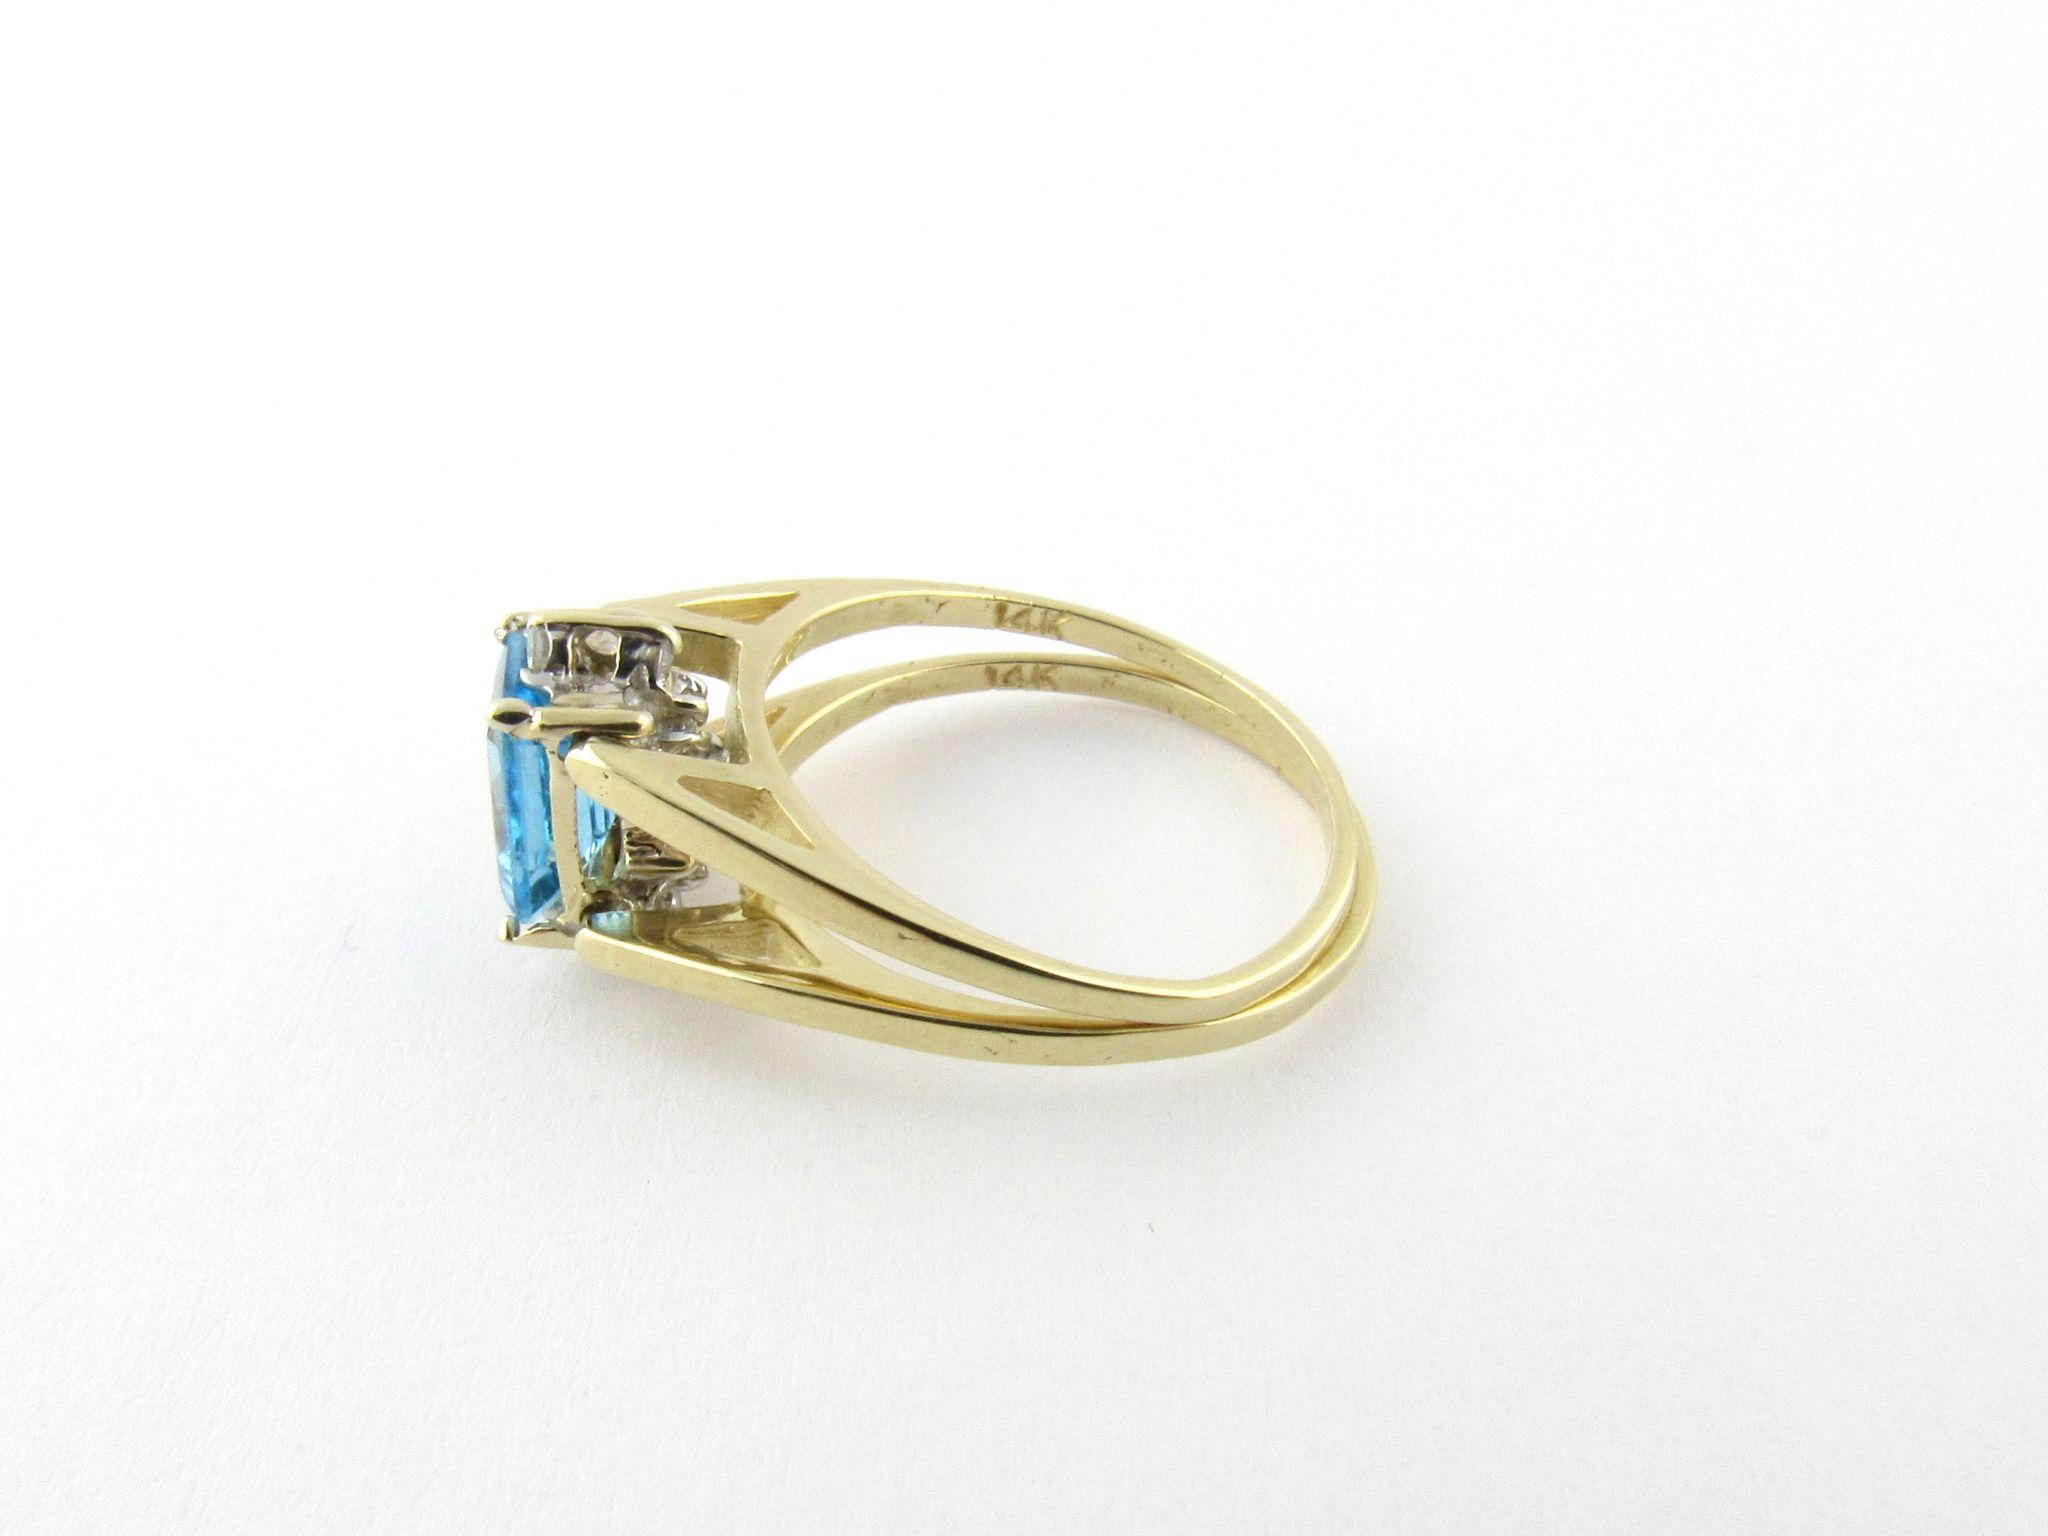 Vintage 14K Yellow Gold Diamond and Blue Topaz Flip Ring Size 6